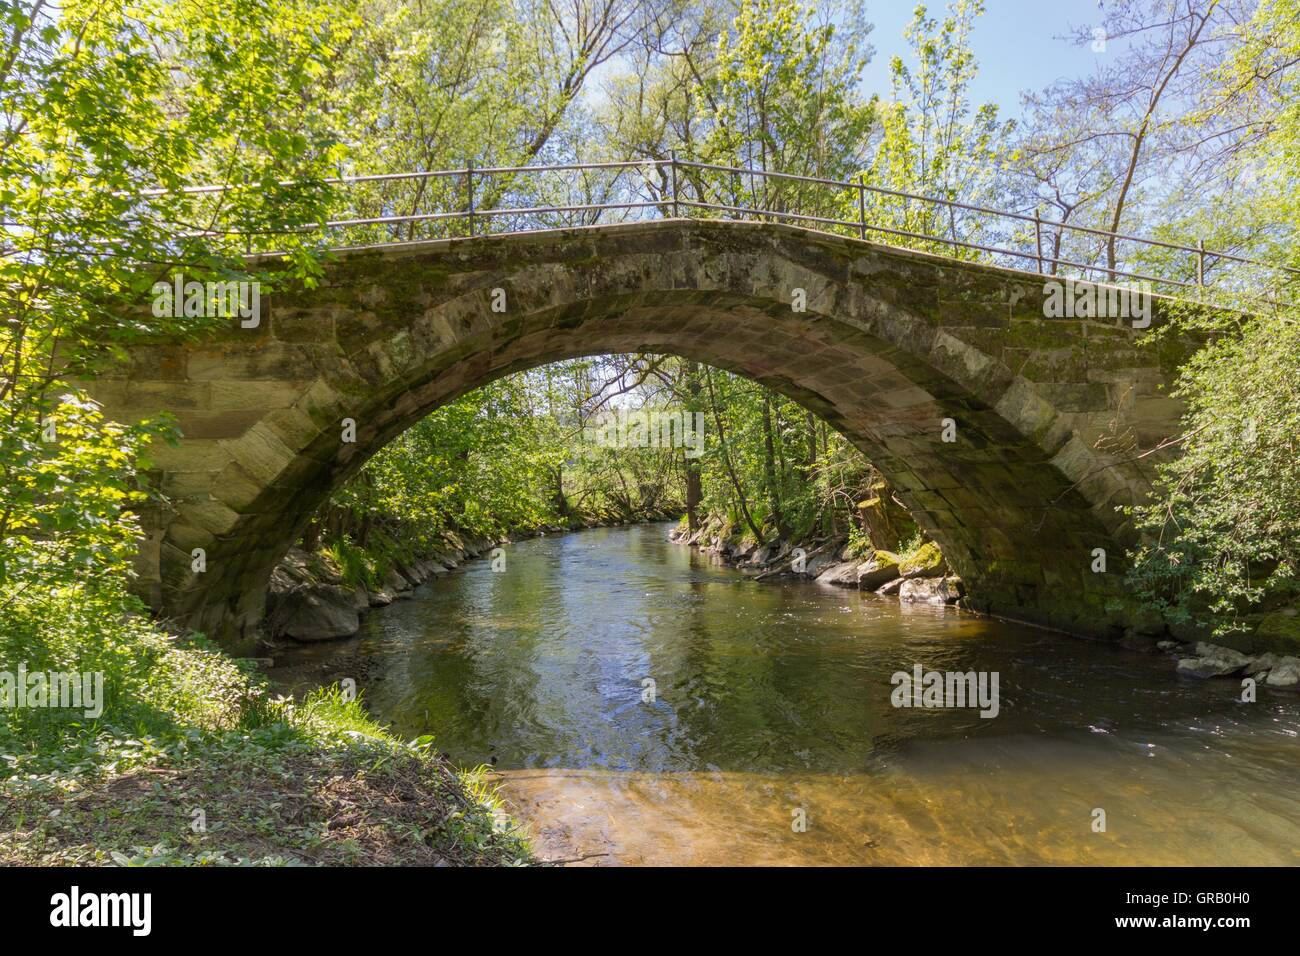 Restored, Historic Arch Bridge From The 17Th Century At The Beginning Of The Baille-Maille Lime Avenue, View From - Stock Image